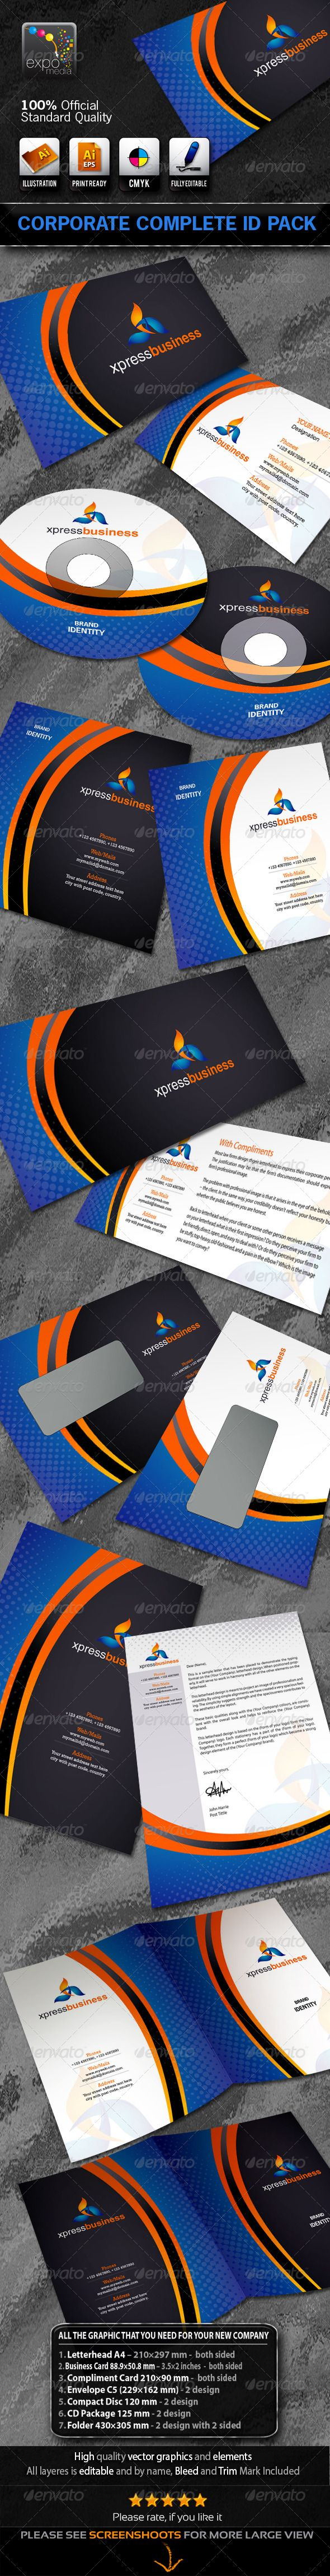 Xpress business corporate stationery id package pinterest xpress business corporate stationery id package graphicriver file information letterhead a4 210297 mm both sided business card 889508 mm 352 reheart Images